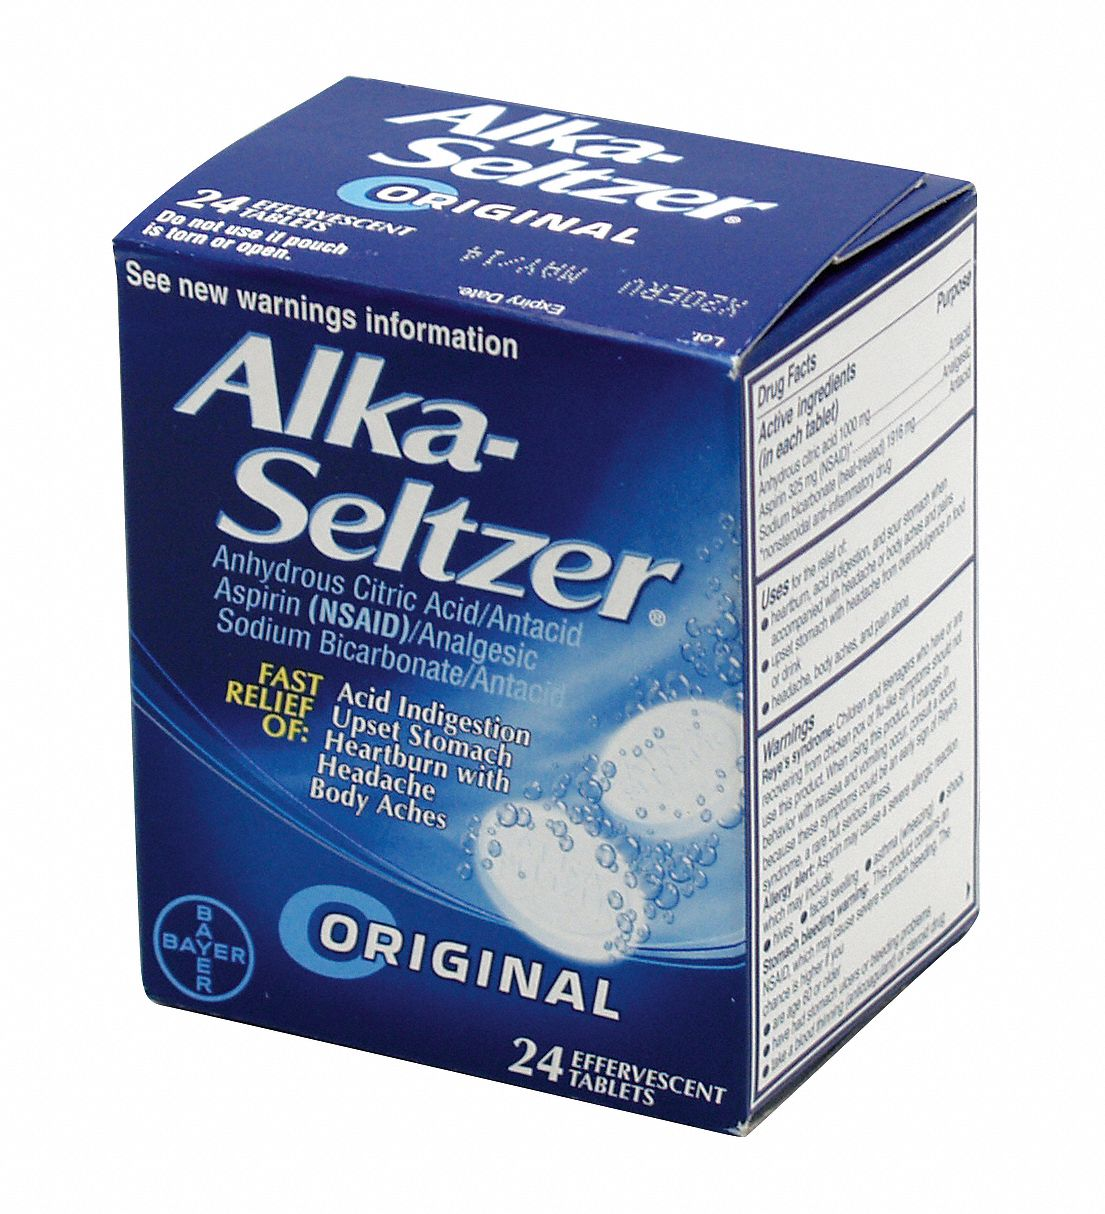 Alka-Seltzer Antacids and Indigestion, Tablet, 24 x 1, Regular Strength, Other